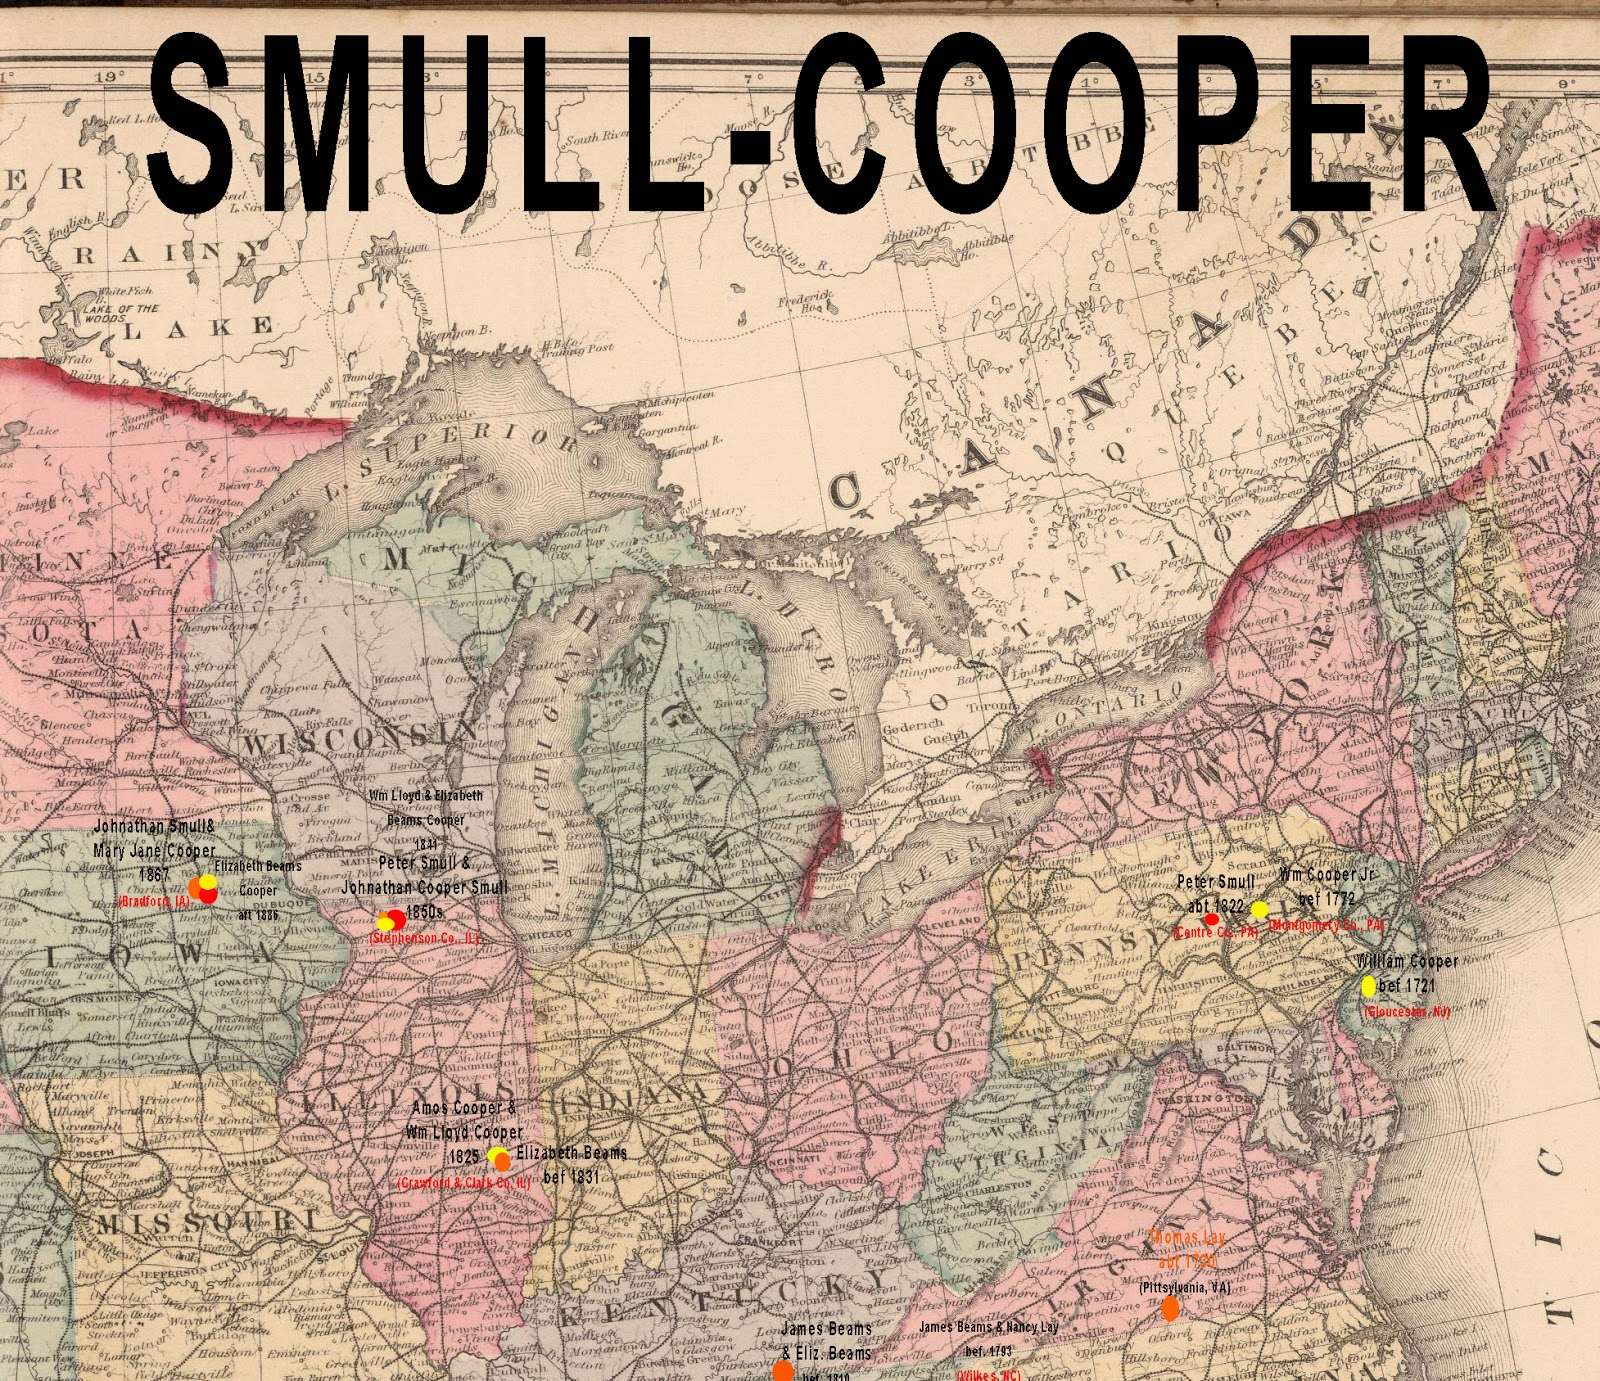 unk smull immigrant who was father to brush valley pa s brothers smull the quaker cooper s of pennsylvania and the quaker beams family of whitley county